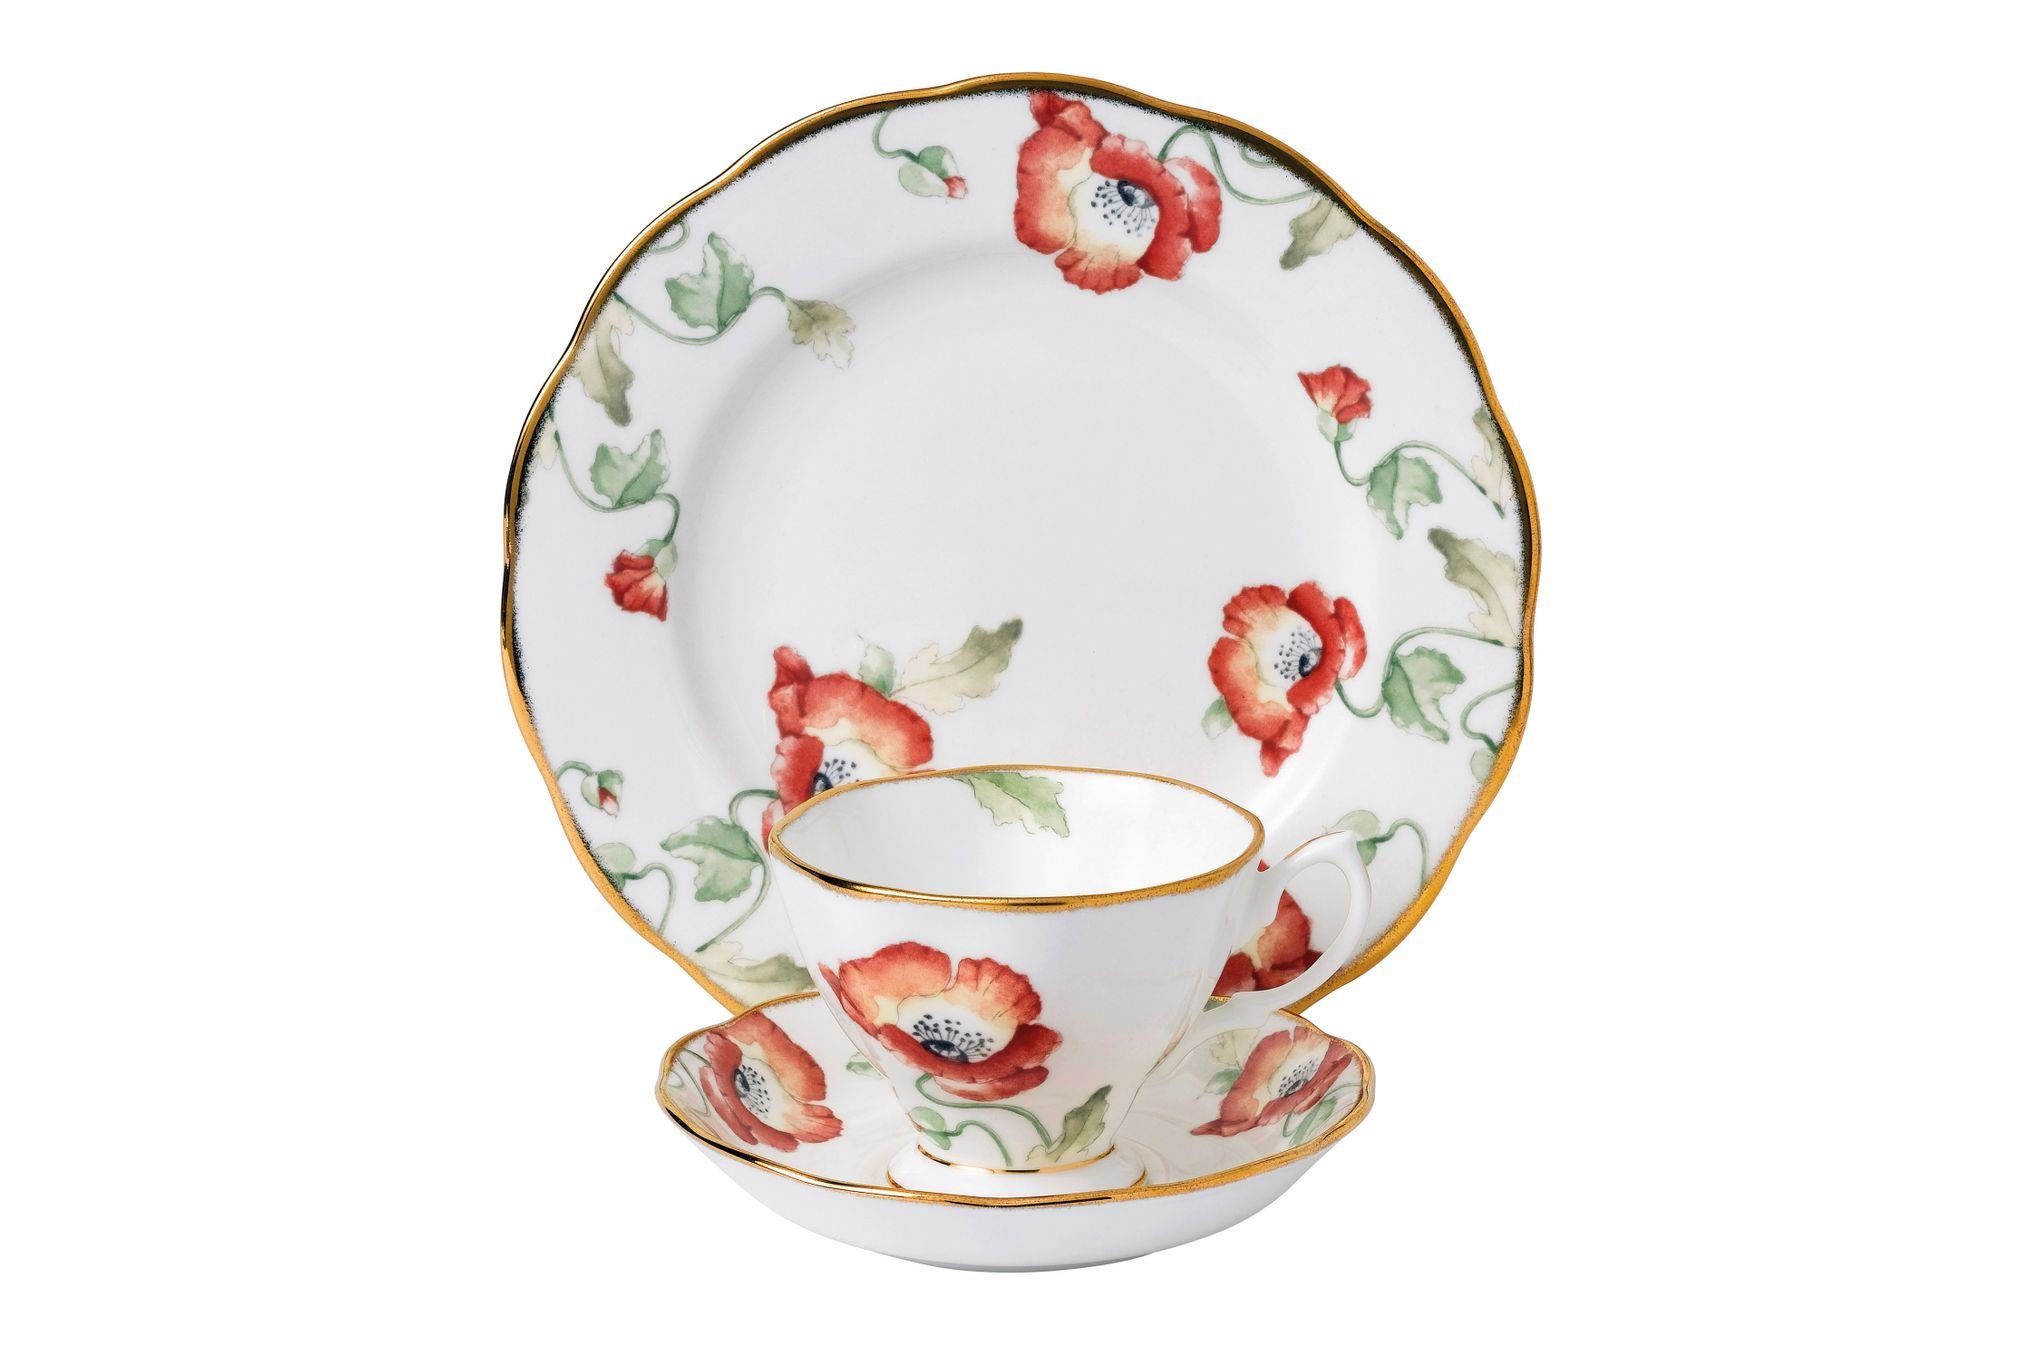 Royal Albert 100 Years of Royal Albert 3 Piece Set Poppy 1970, Teacup & Saucer, Plate 20cm thumb 1